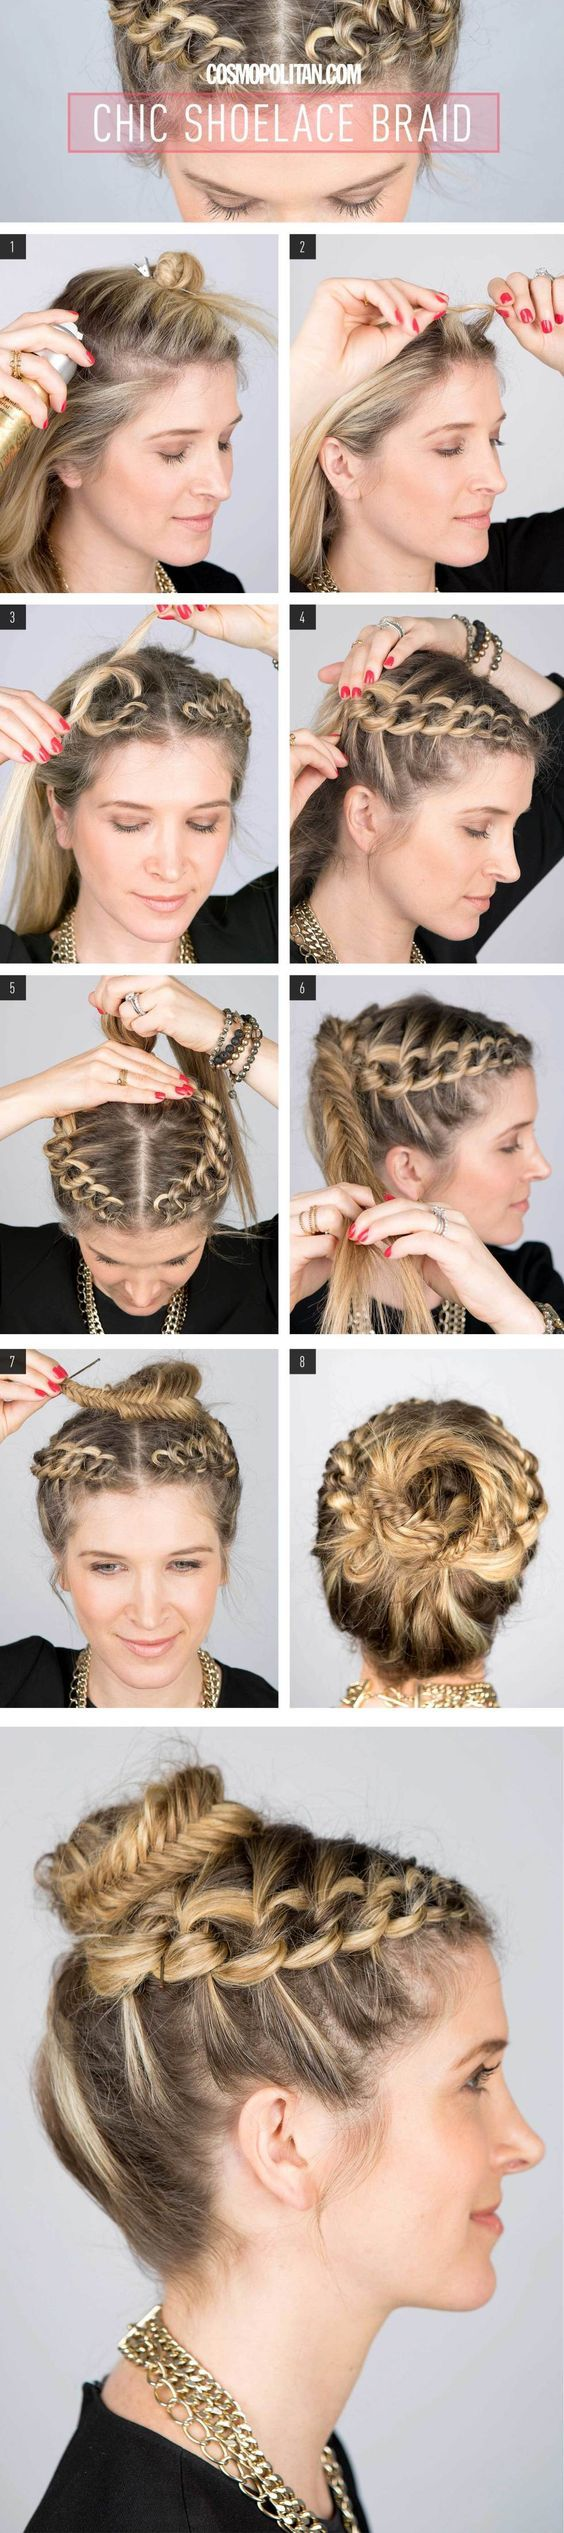 How To Create A Shoelace Braid Updo. The girls would love this!